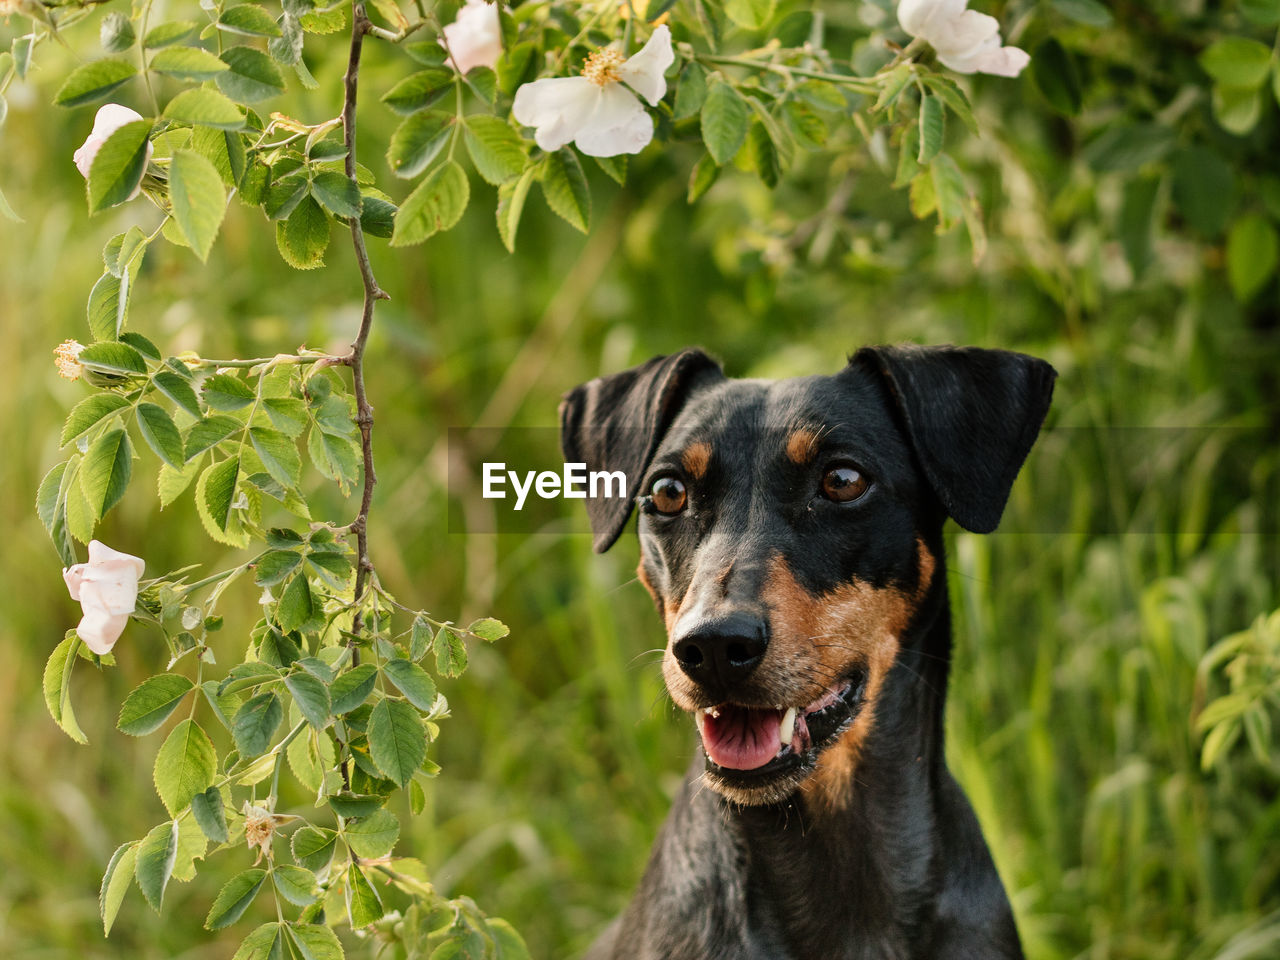 one animal, dog, canine, domestic animals, animal themes, domestic, pets, mammal, animal, vertebrate, focus on foreground, portrait, plant, no people, close-up, day, looking, looking at camera, animal body part, nature, animal head, outdoors, purebred dog, mouth open